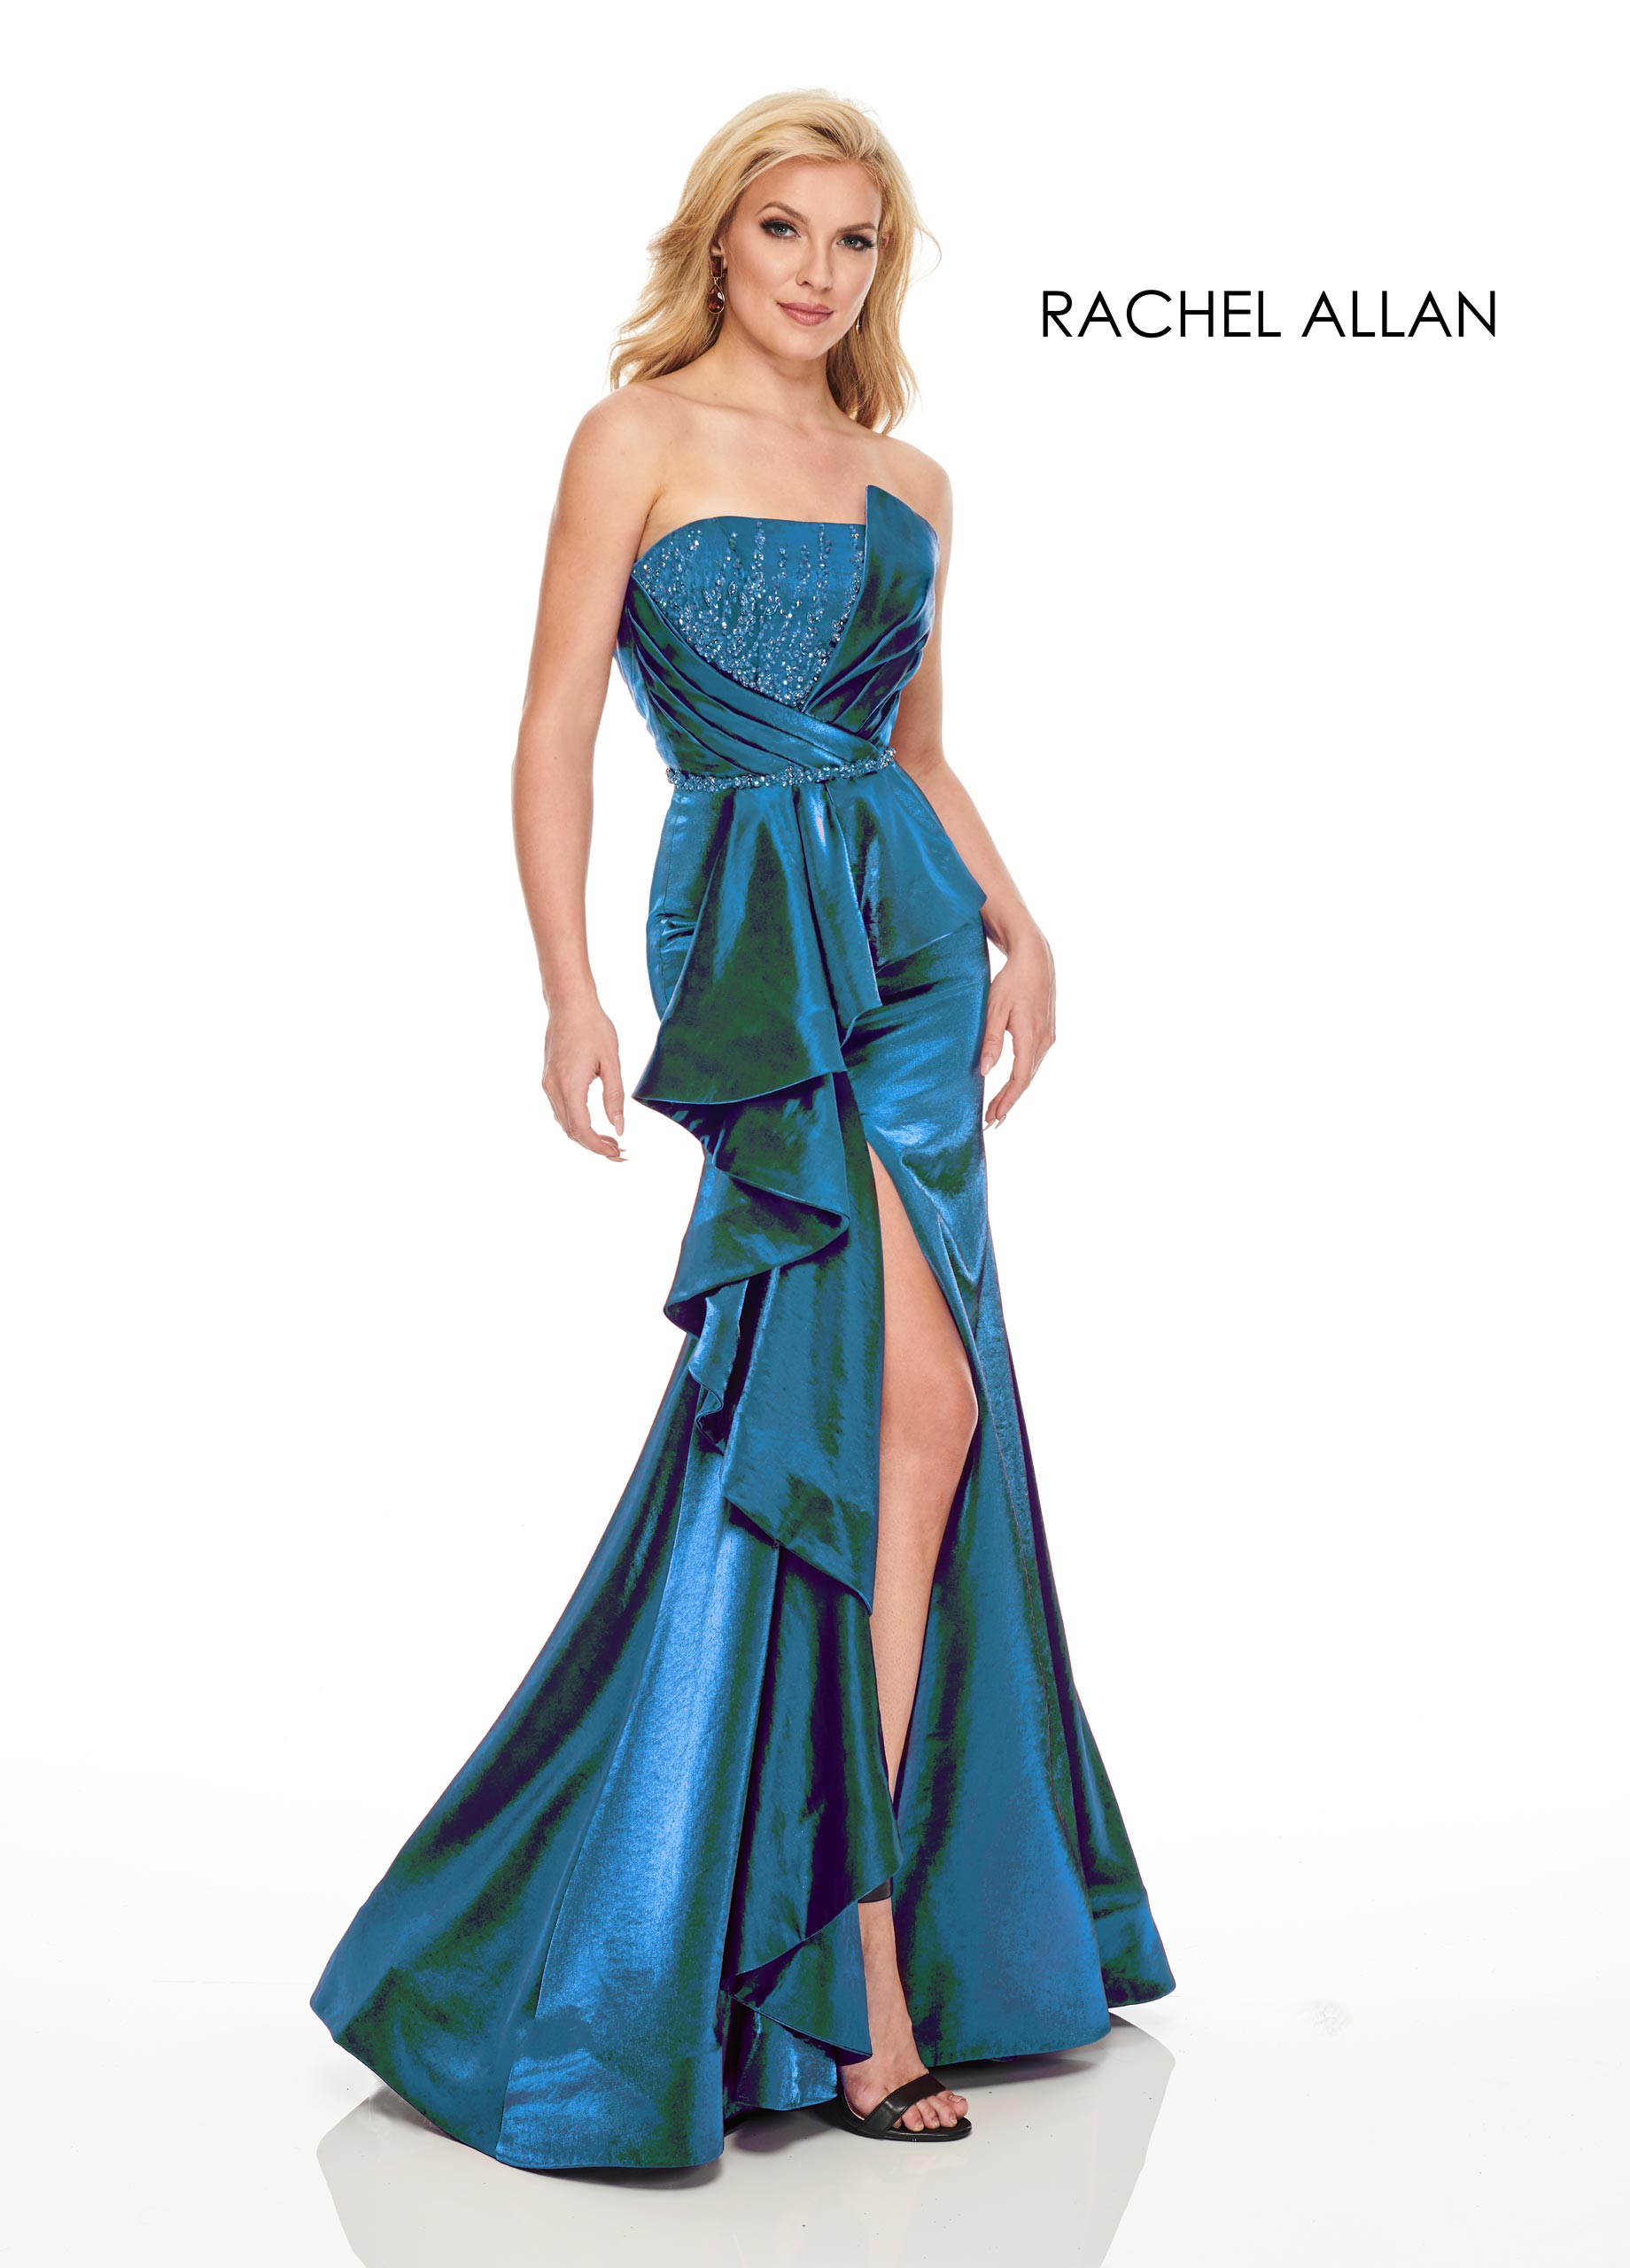 Strapless Mermaid Couture Dresses in Blue Color